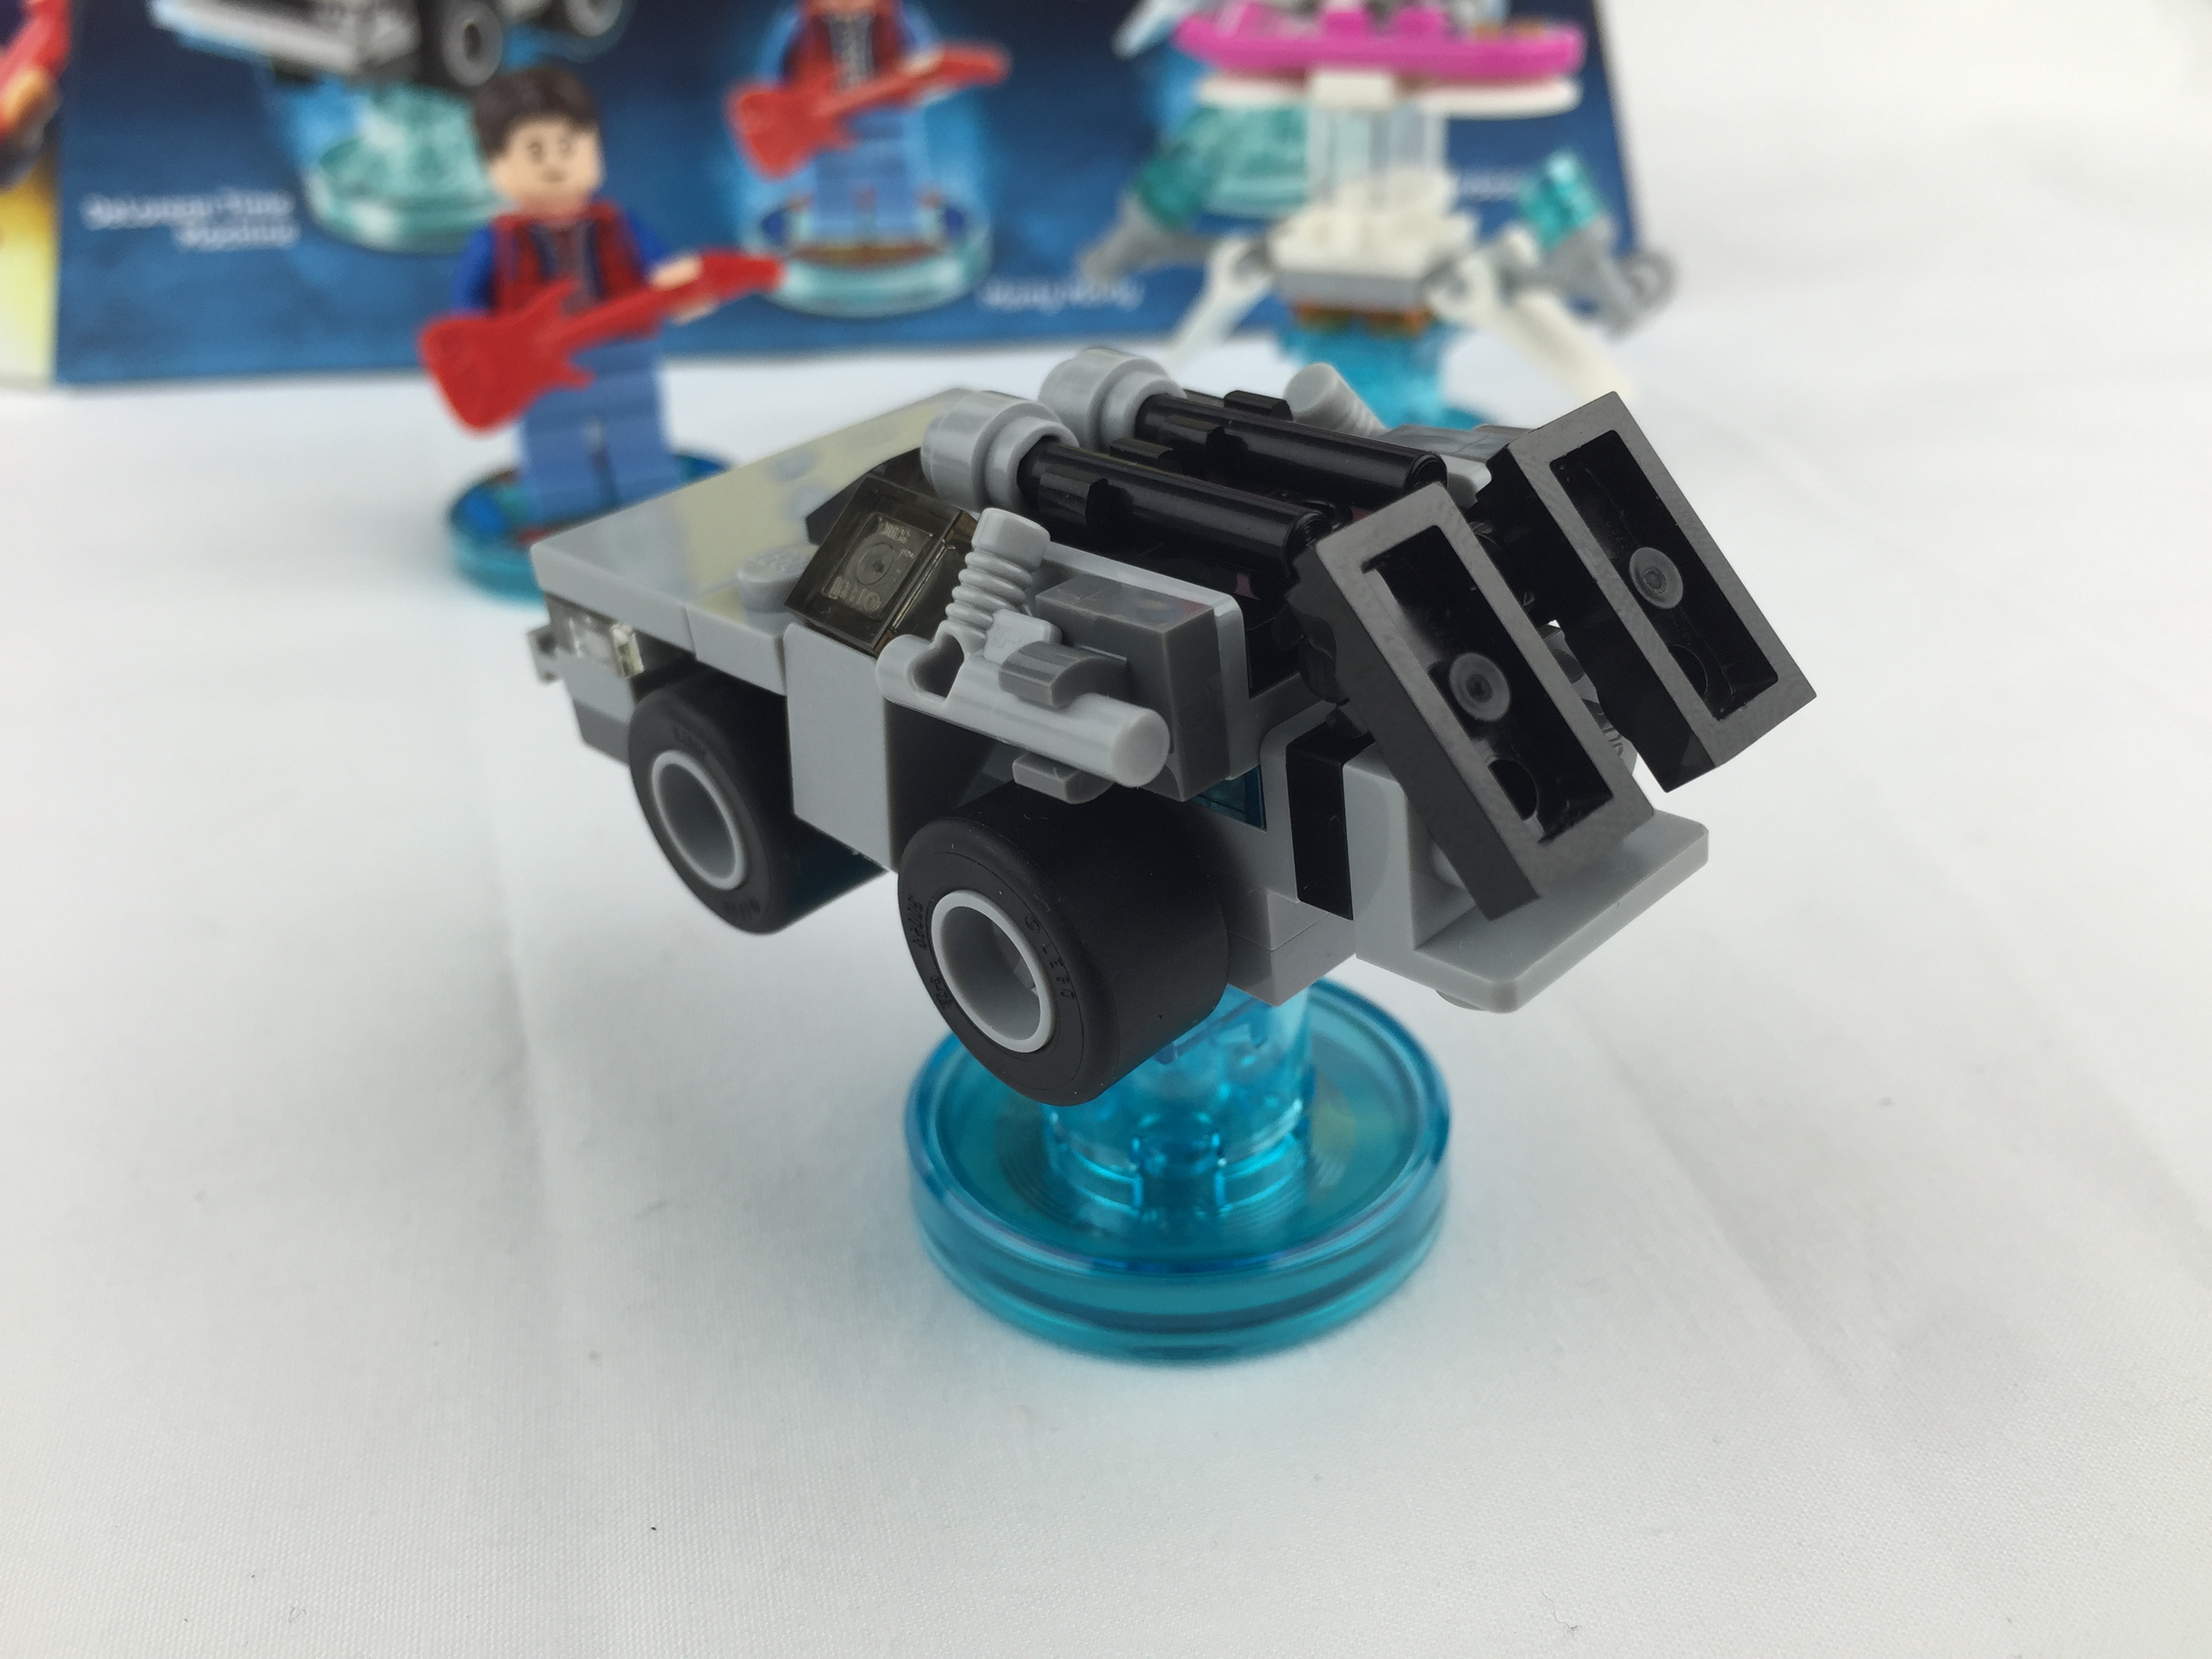 LEGO Dimensions News: Previewing The LEGO Dimensions 71201 ...